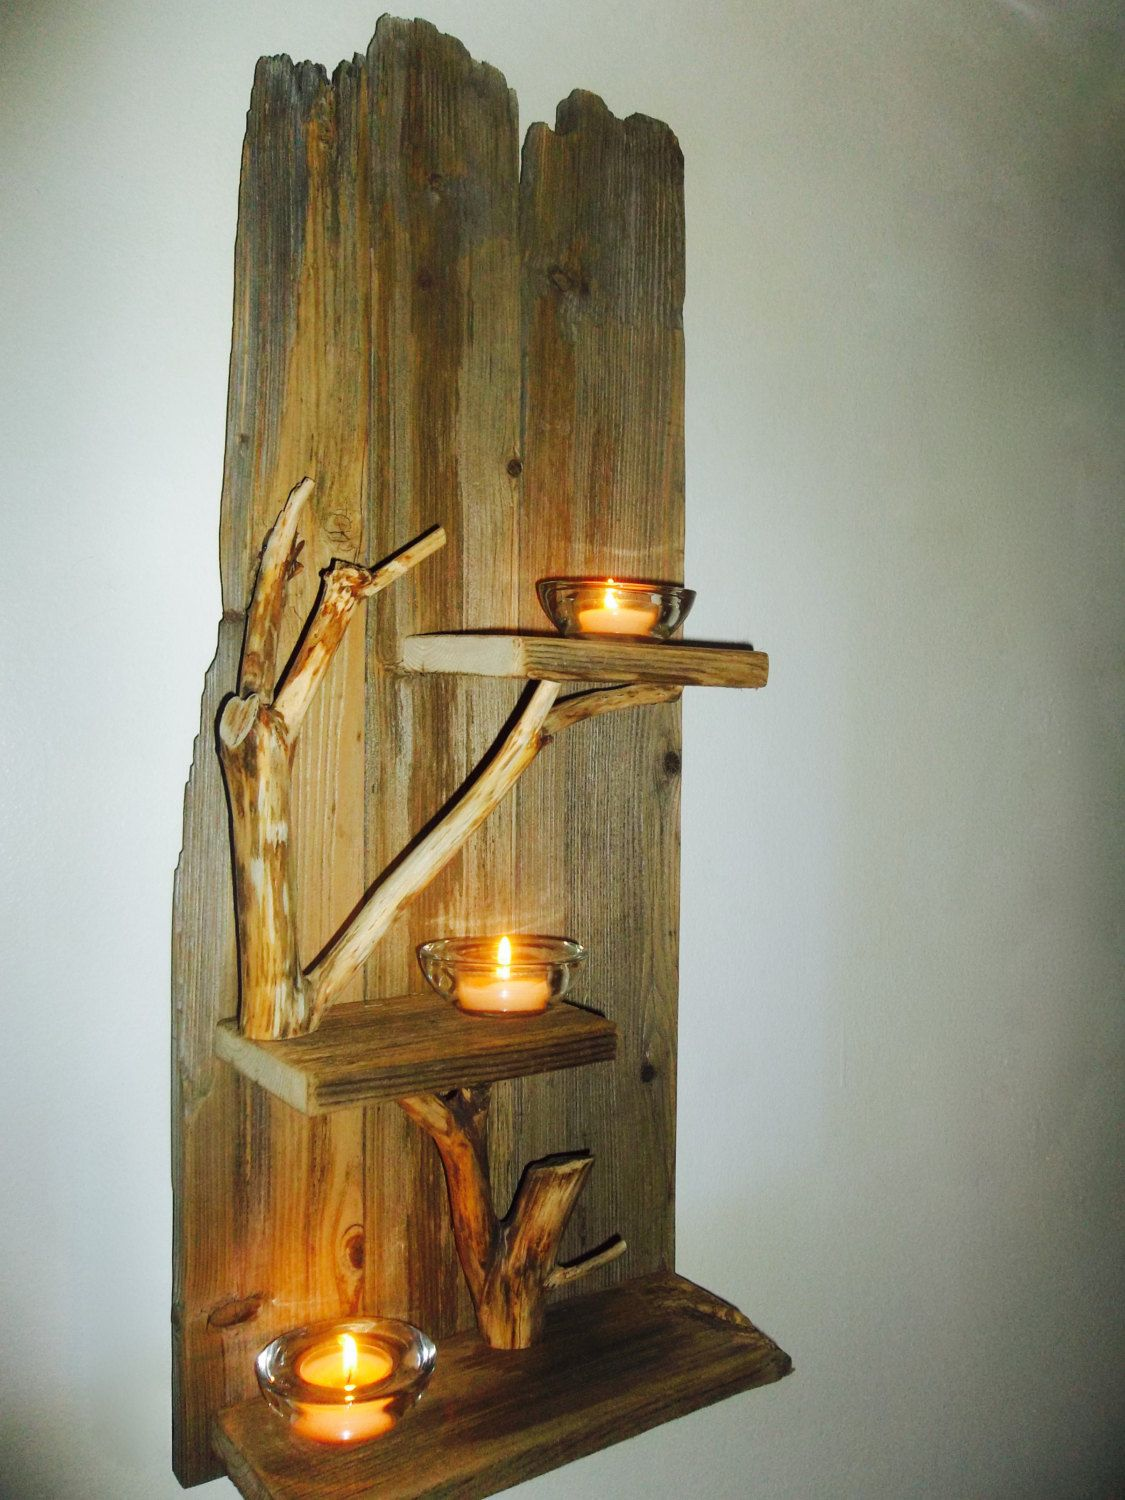 Wall Sconce,Wall Lighting,Home Decor,Wall Decor,Wood Sconces,Wood  Lighting,Tealight Holder,Wall Shelving,Rustic Wall Decor,Wall Displays By  DinosWoodshop On ...